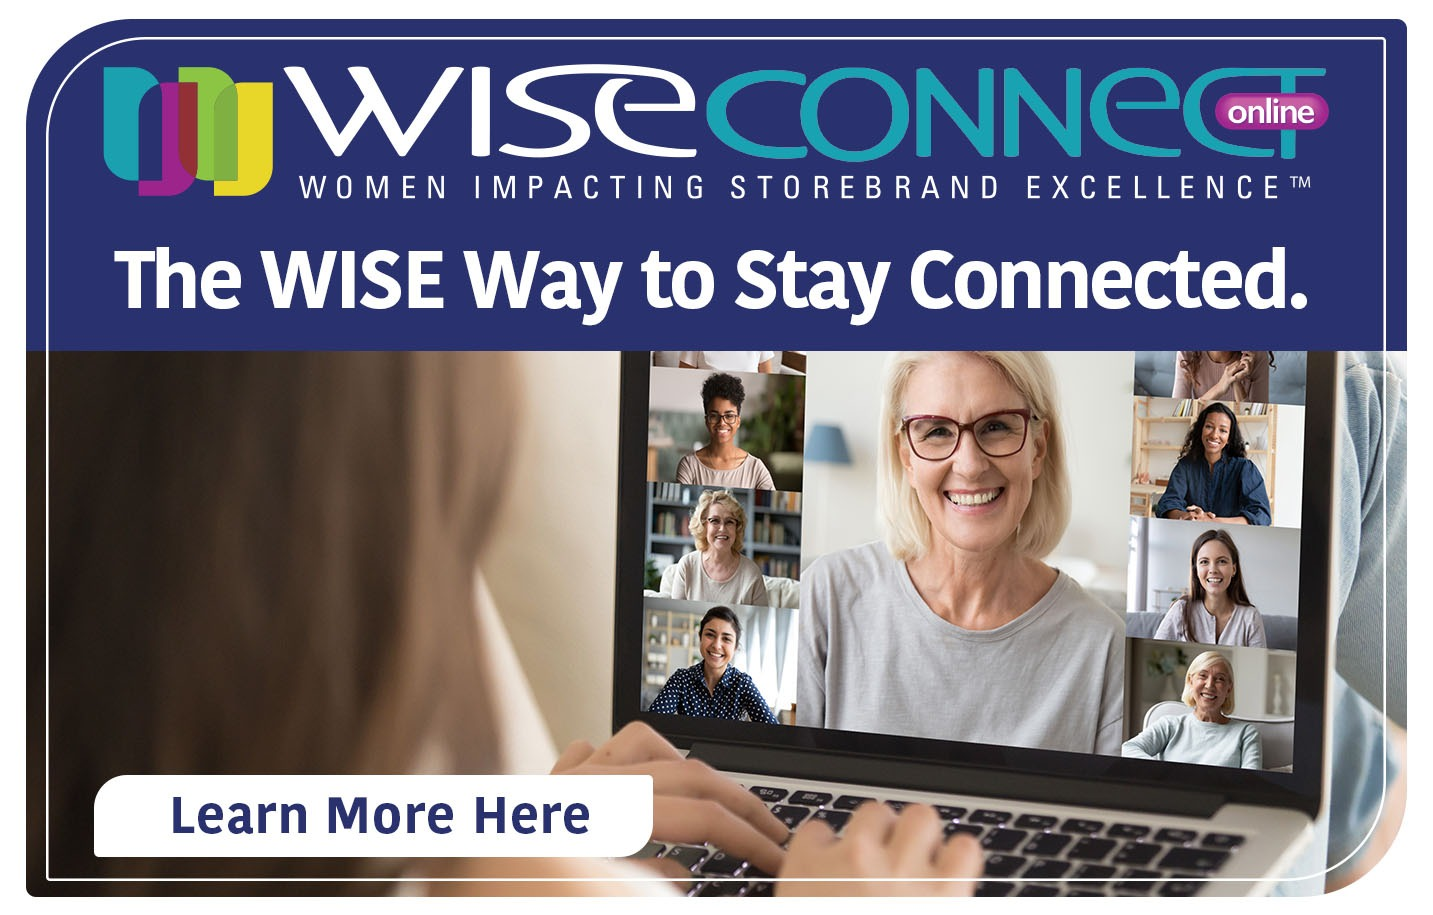 WISE-165 WISEConnect Web Graphic 0604